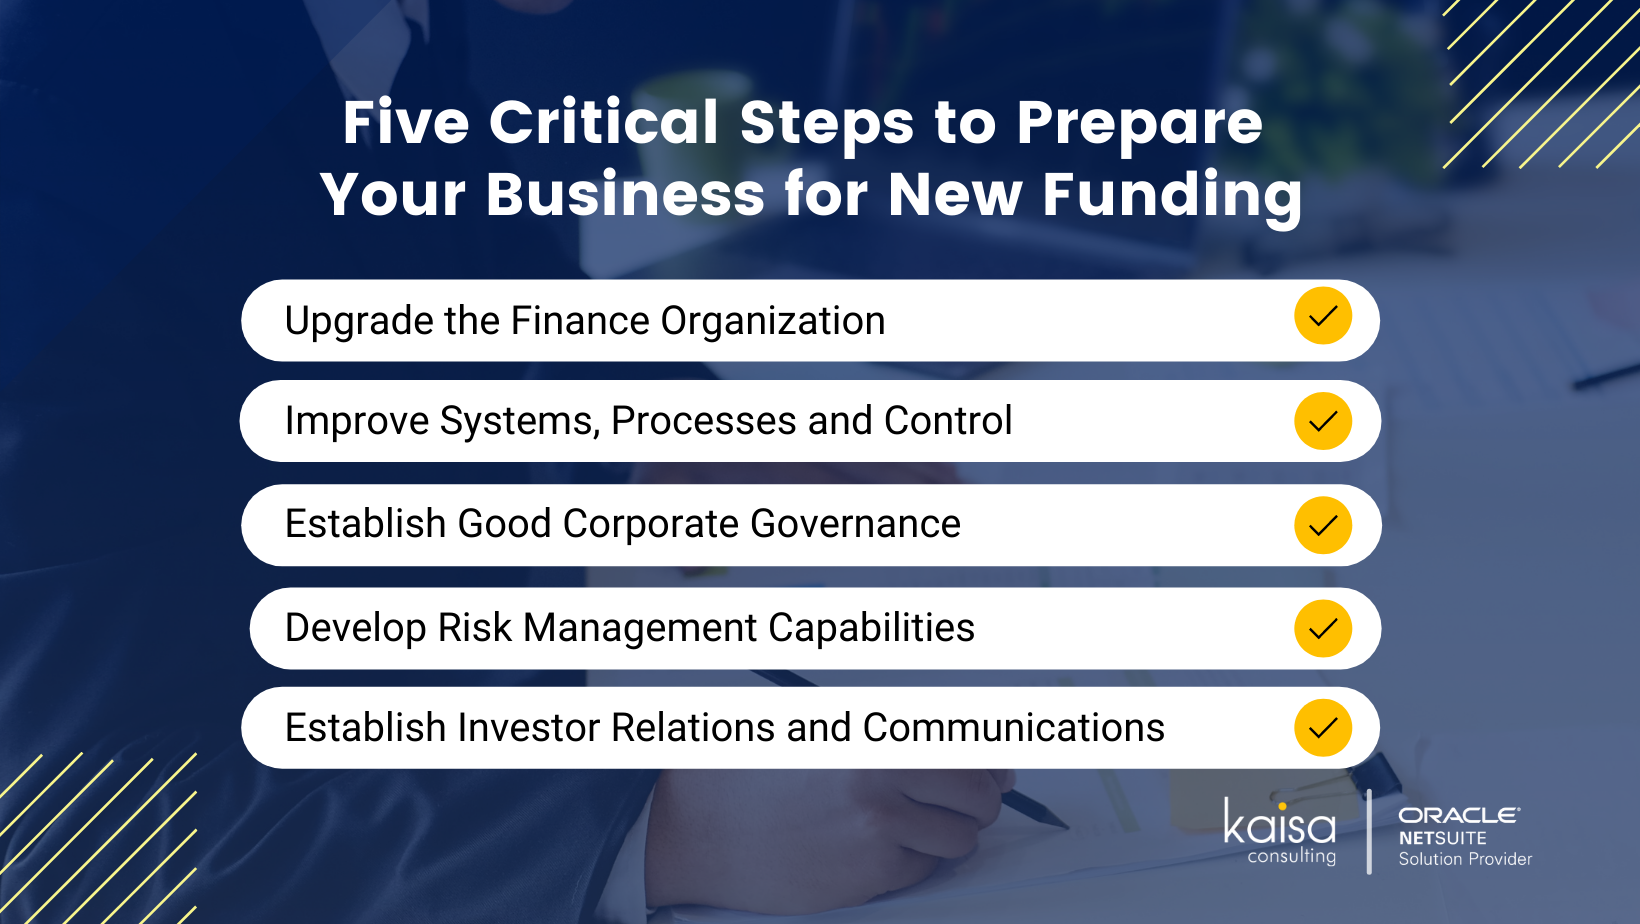 https://www.kaisa.com/wp-content/uploads/2021/10/Five-Critical-Steps-to-Prepare-Your-Business-for-New-Funding-FBLI-1.png